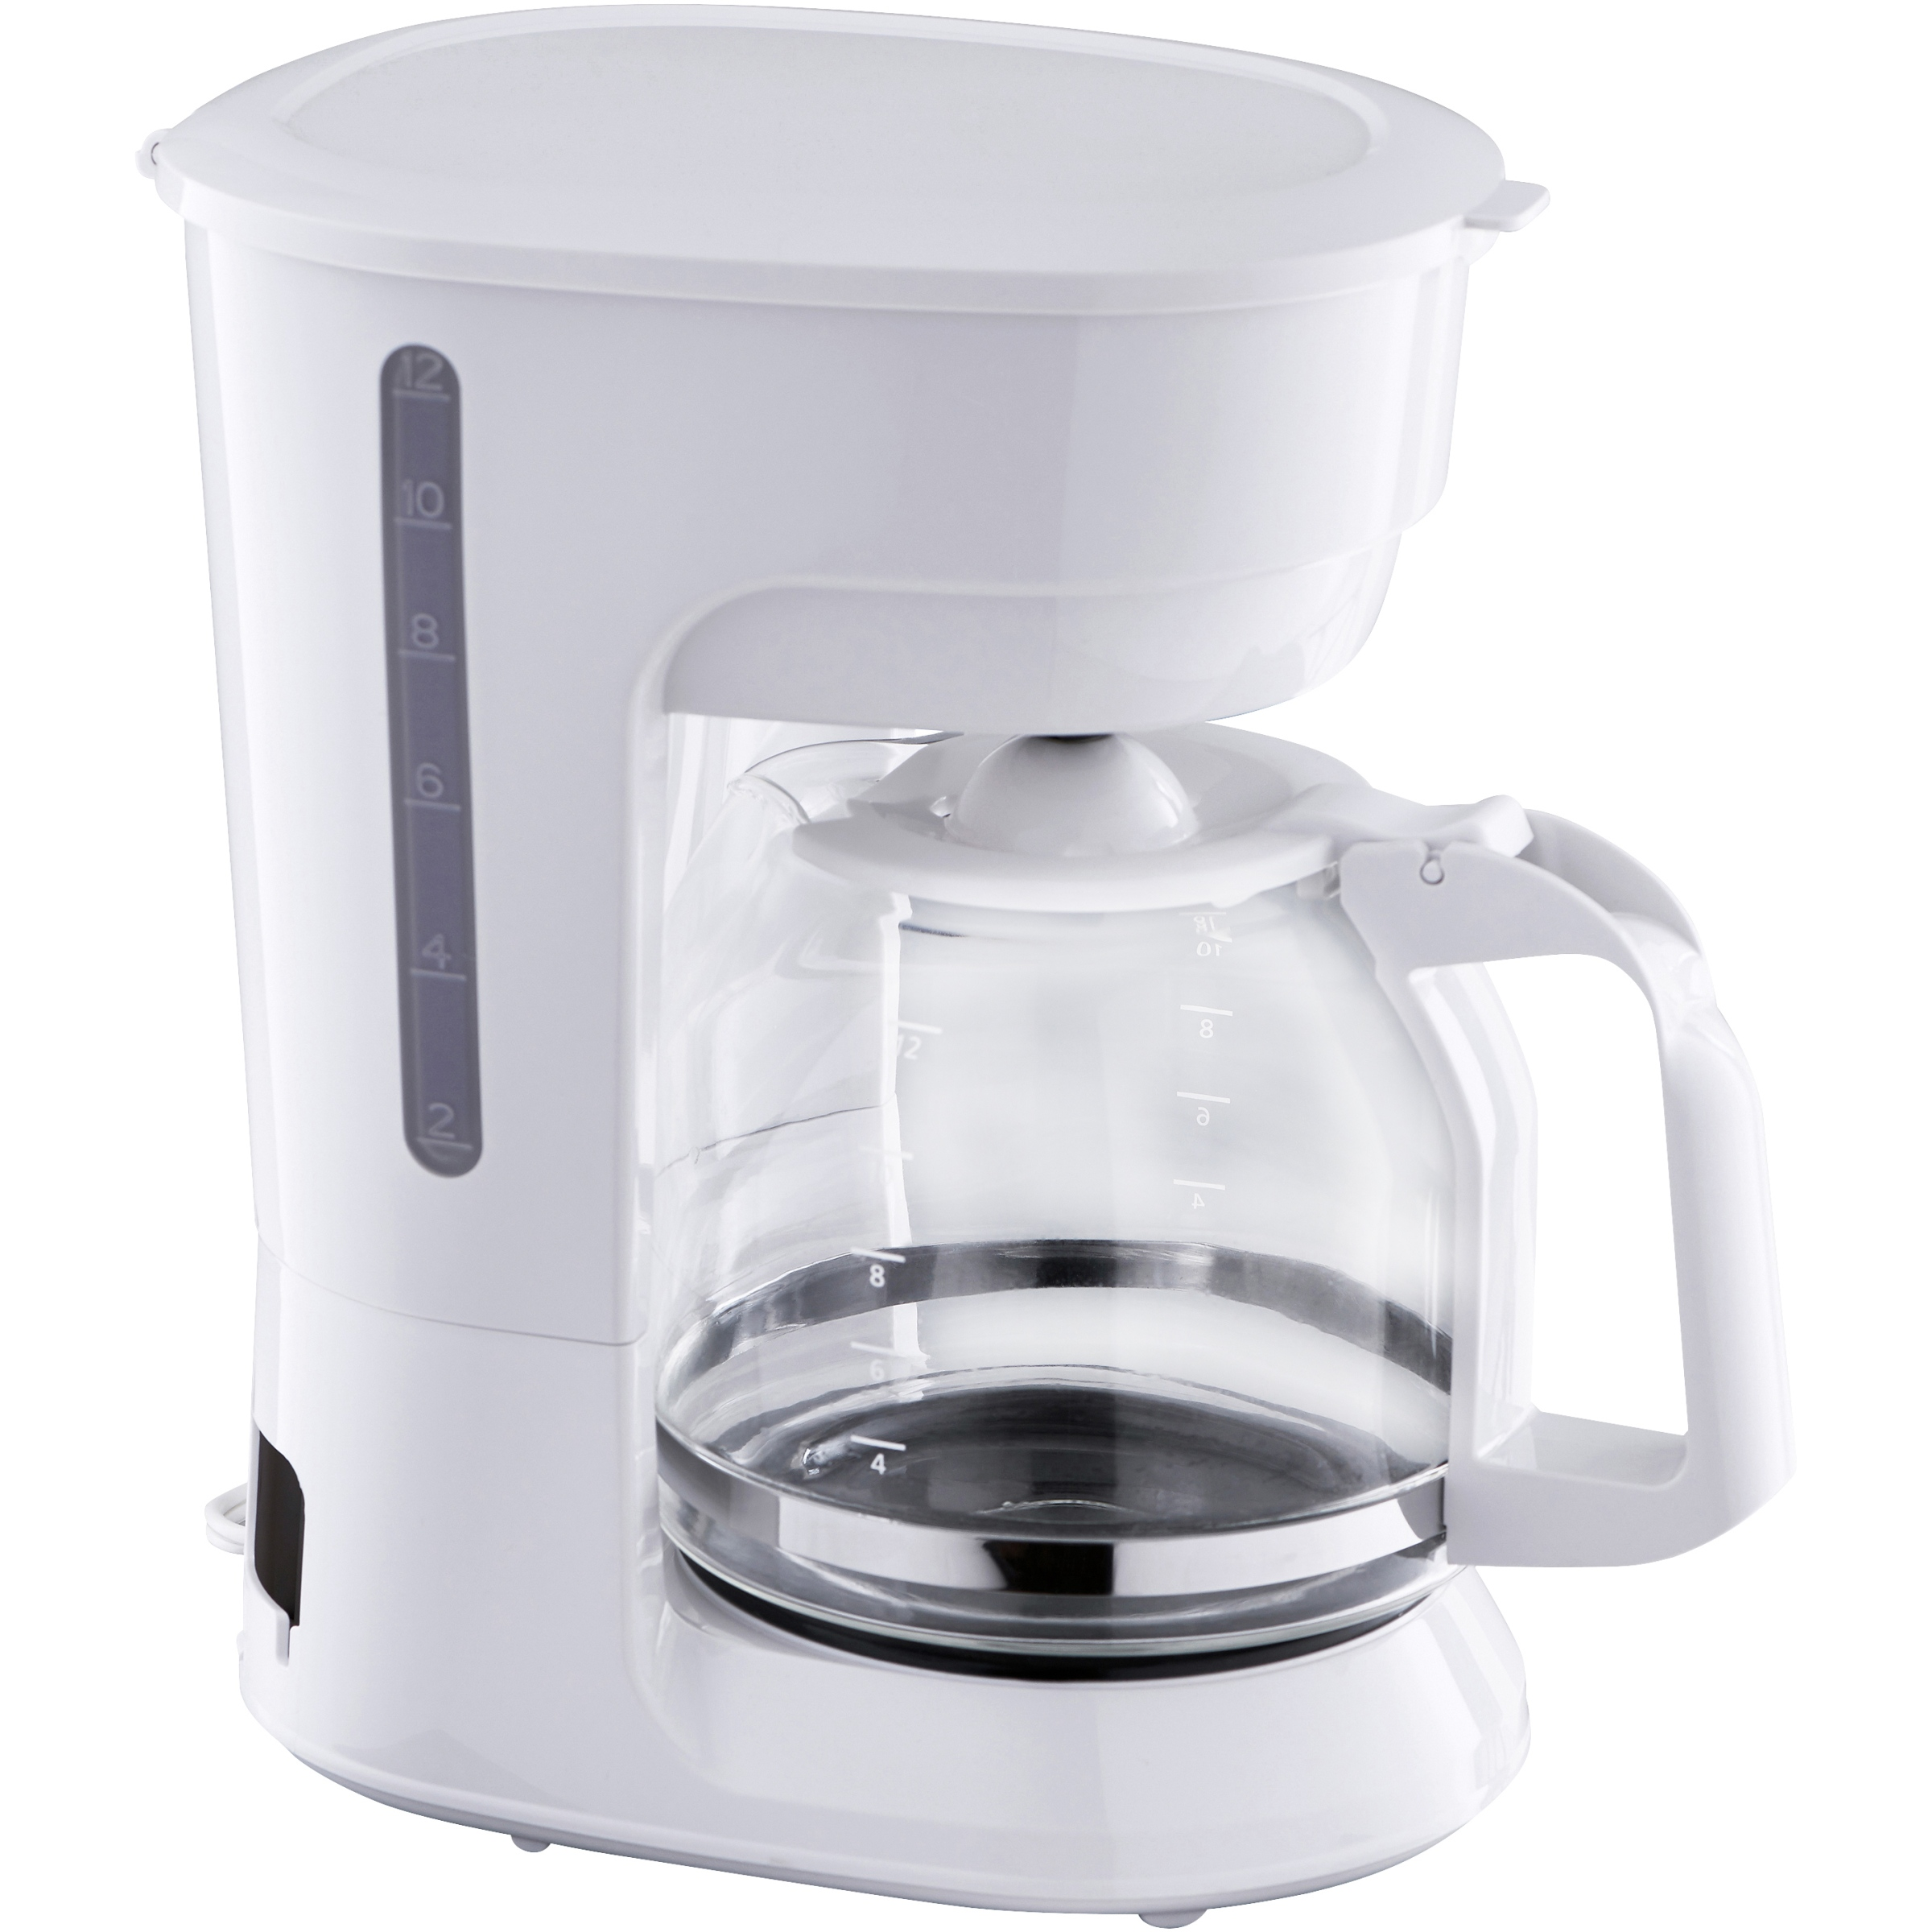 Mainstays Black 12-Cup Coffee Maker with Removable Filter Basket